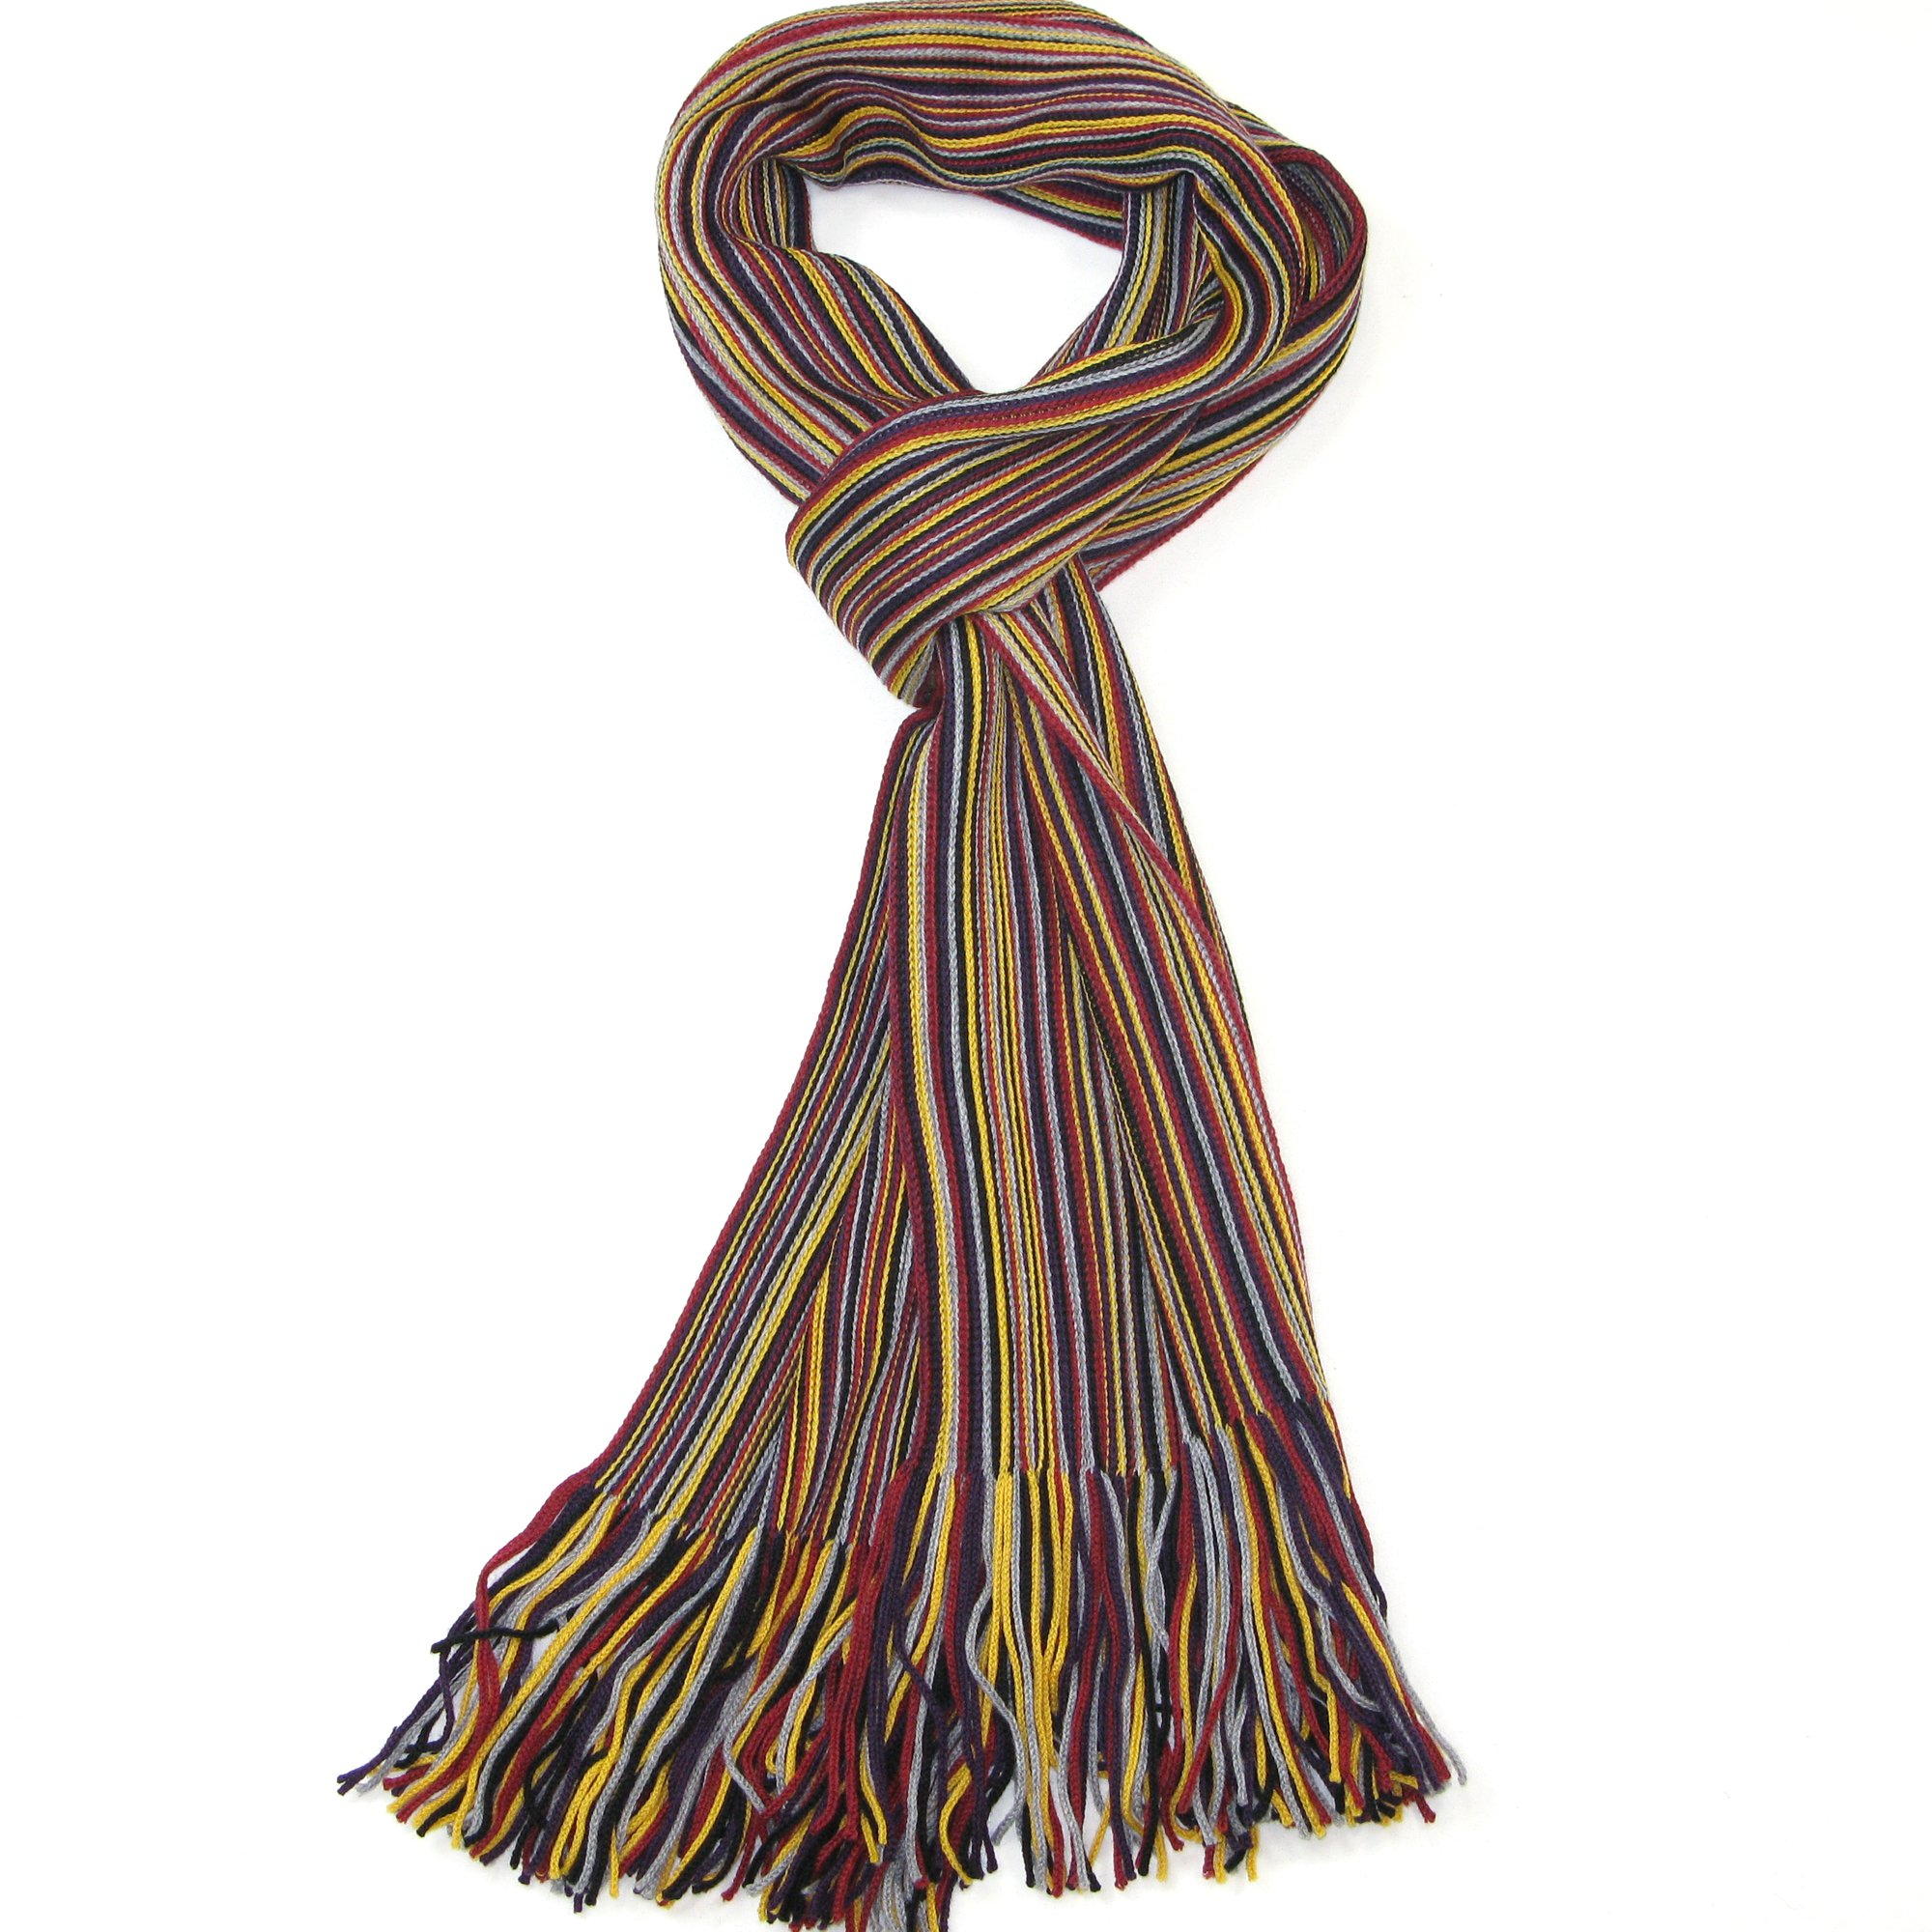 Red, Yellow, Grey and Black Men's Scarf - Beautiful Merino Wool Striped Scarf